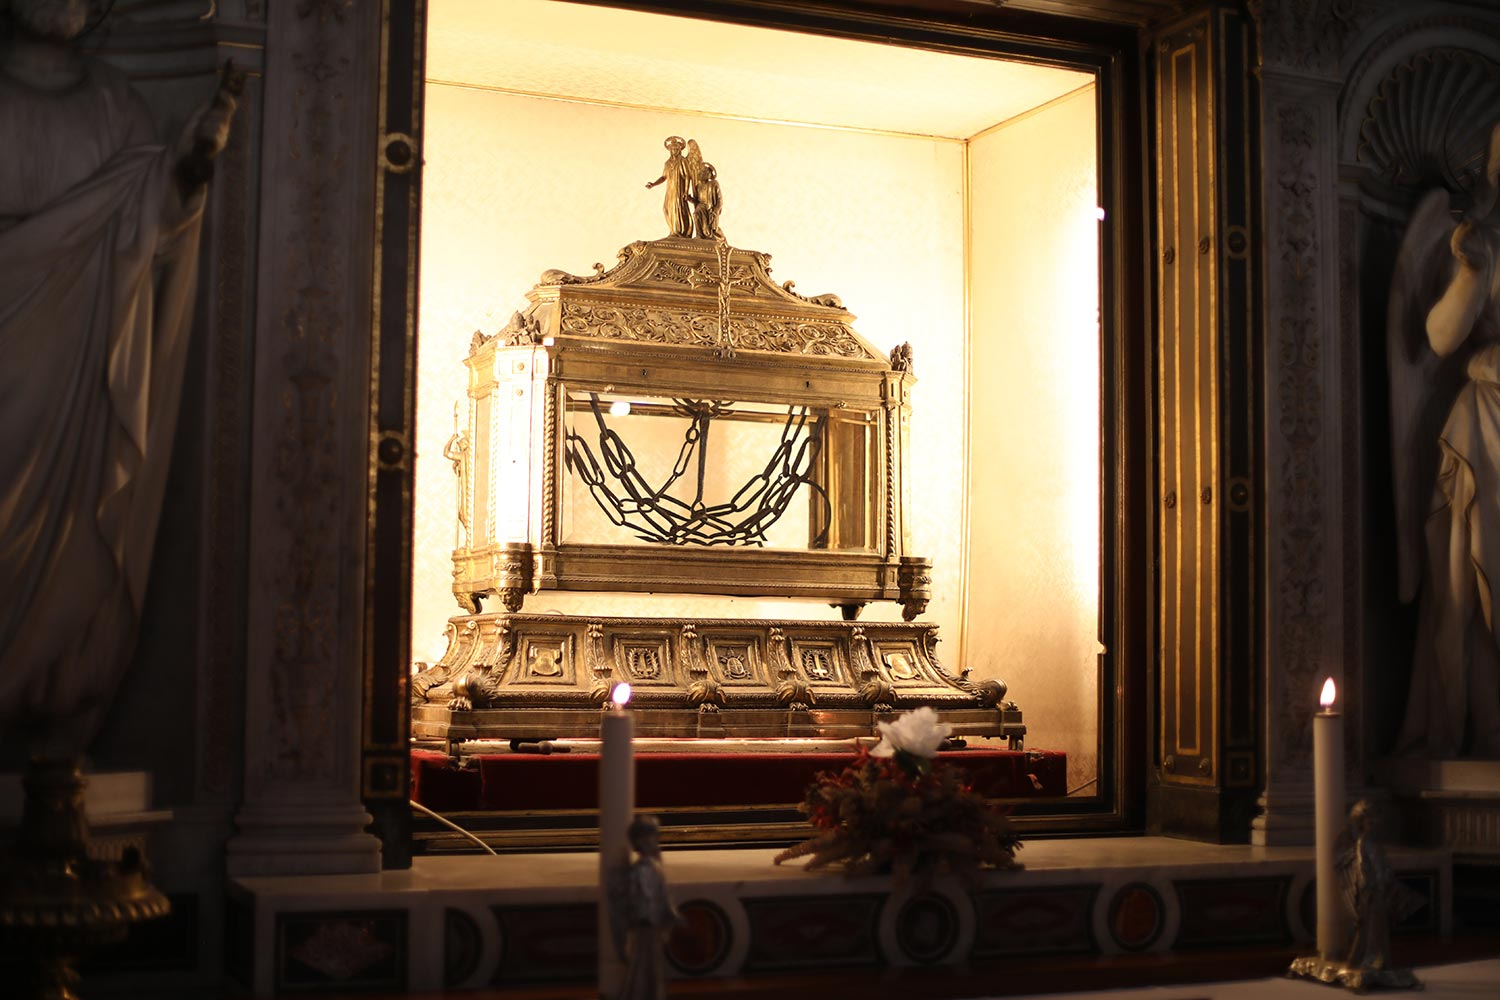 Pilgrimage_Rome_3130_Chains.jpg